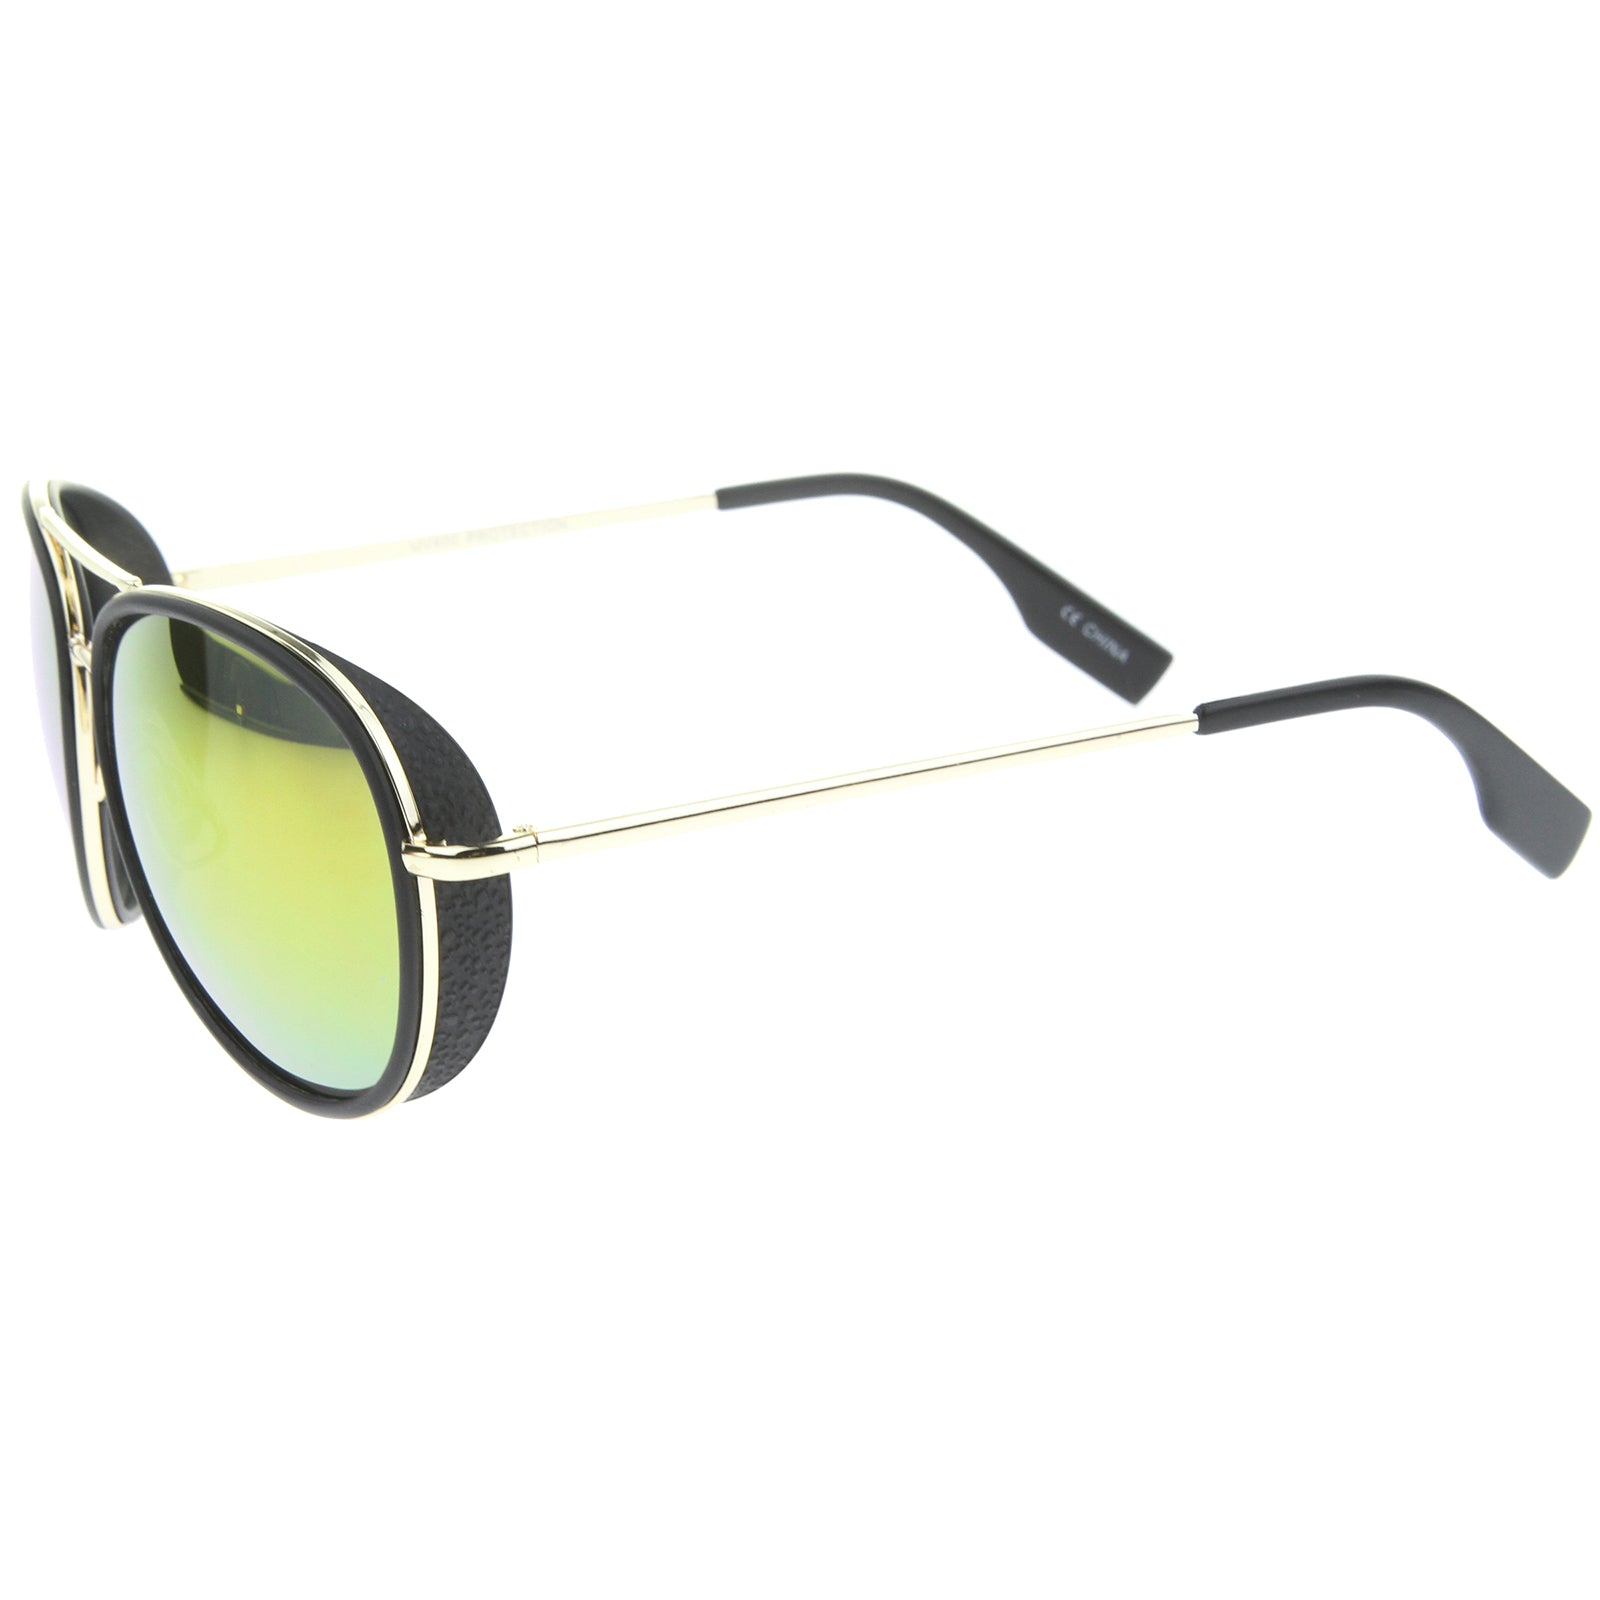 Mens Aviator Sunglasses With UV400 Protected Mirrored Lens - sunglass.la - 3